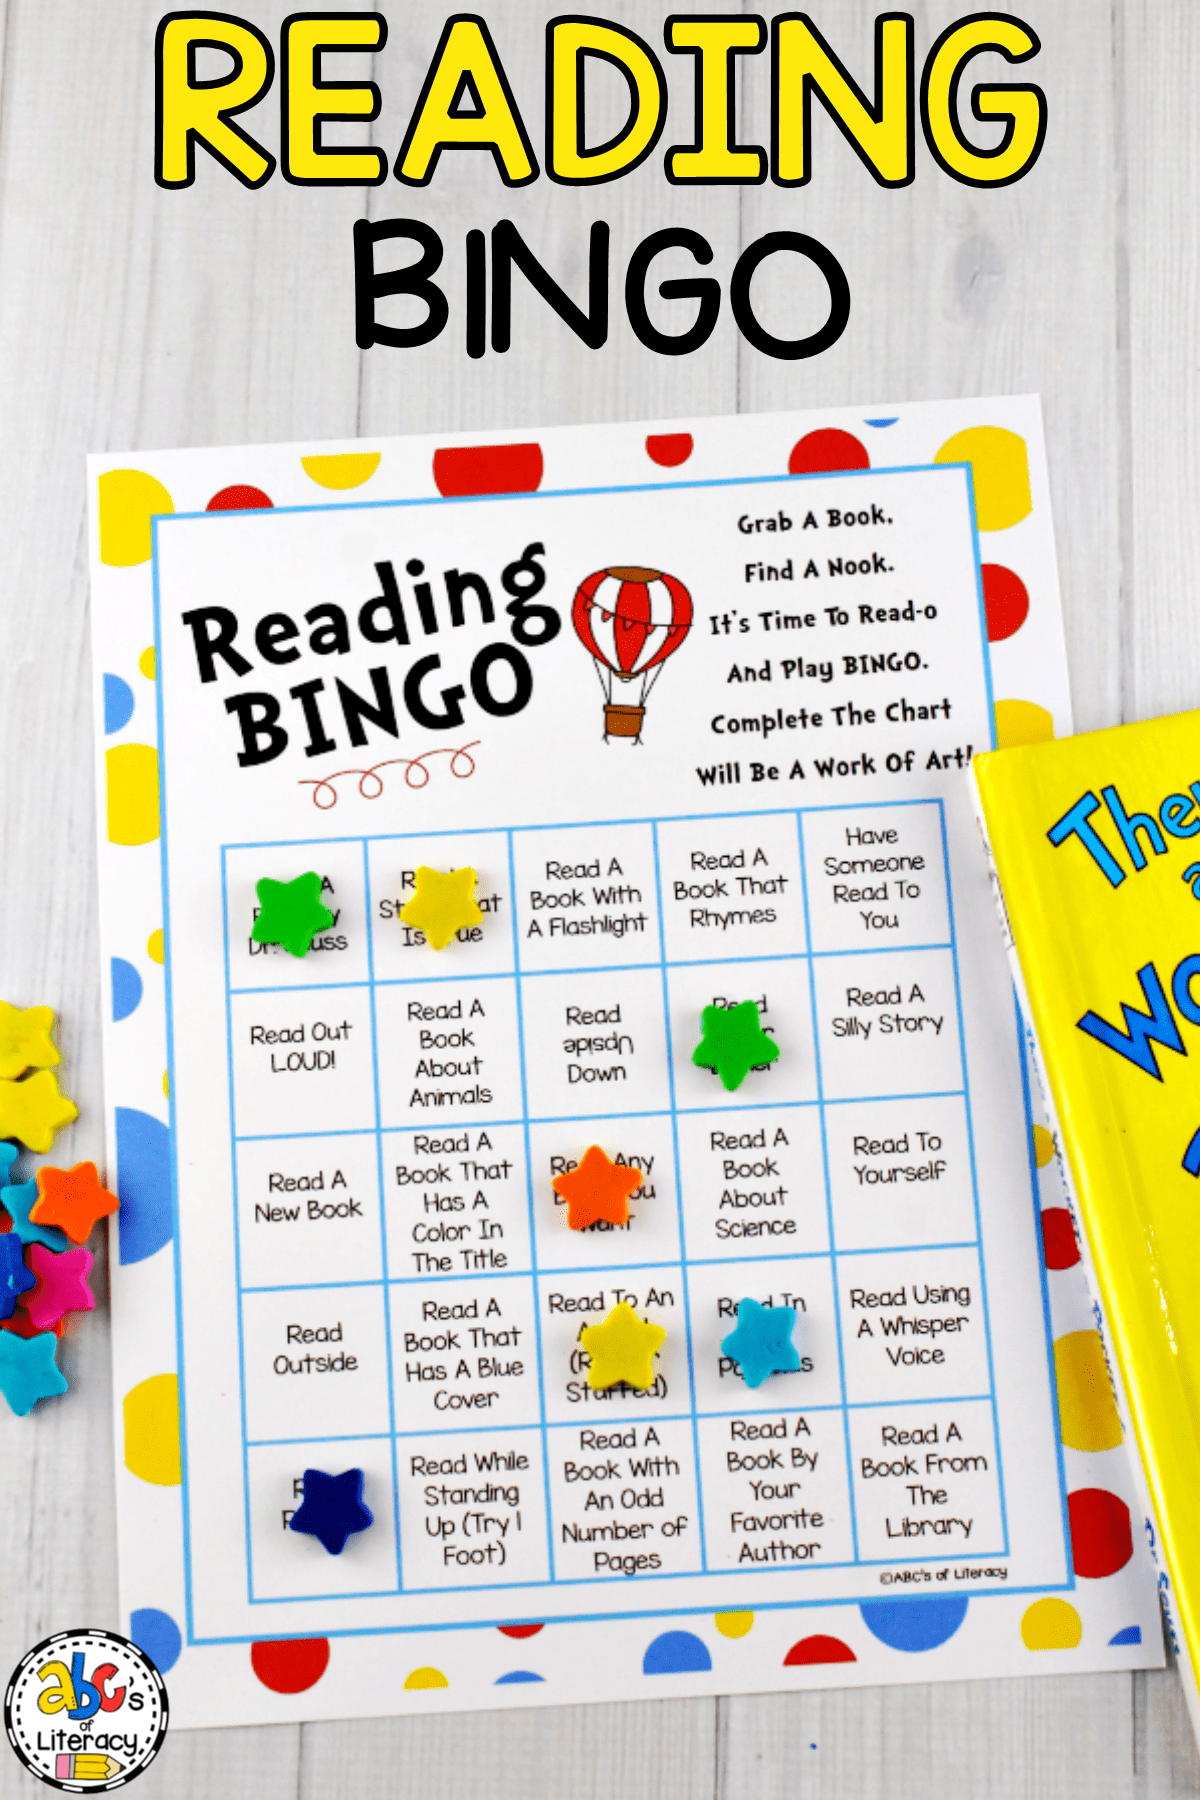 Reading Bingo, Reading Month, Read Across America, Dr. Seuss Birthday, March 2nd, Dr. Seuss Books